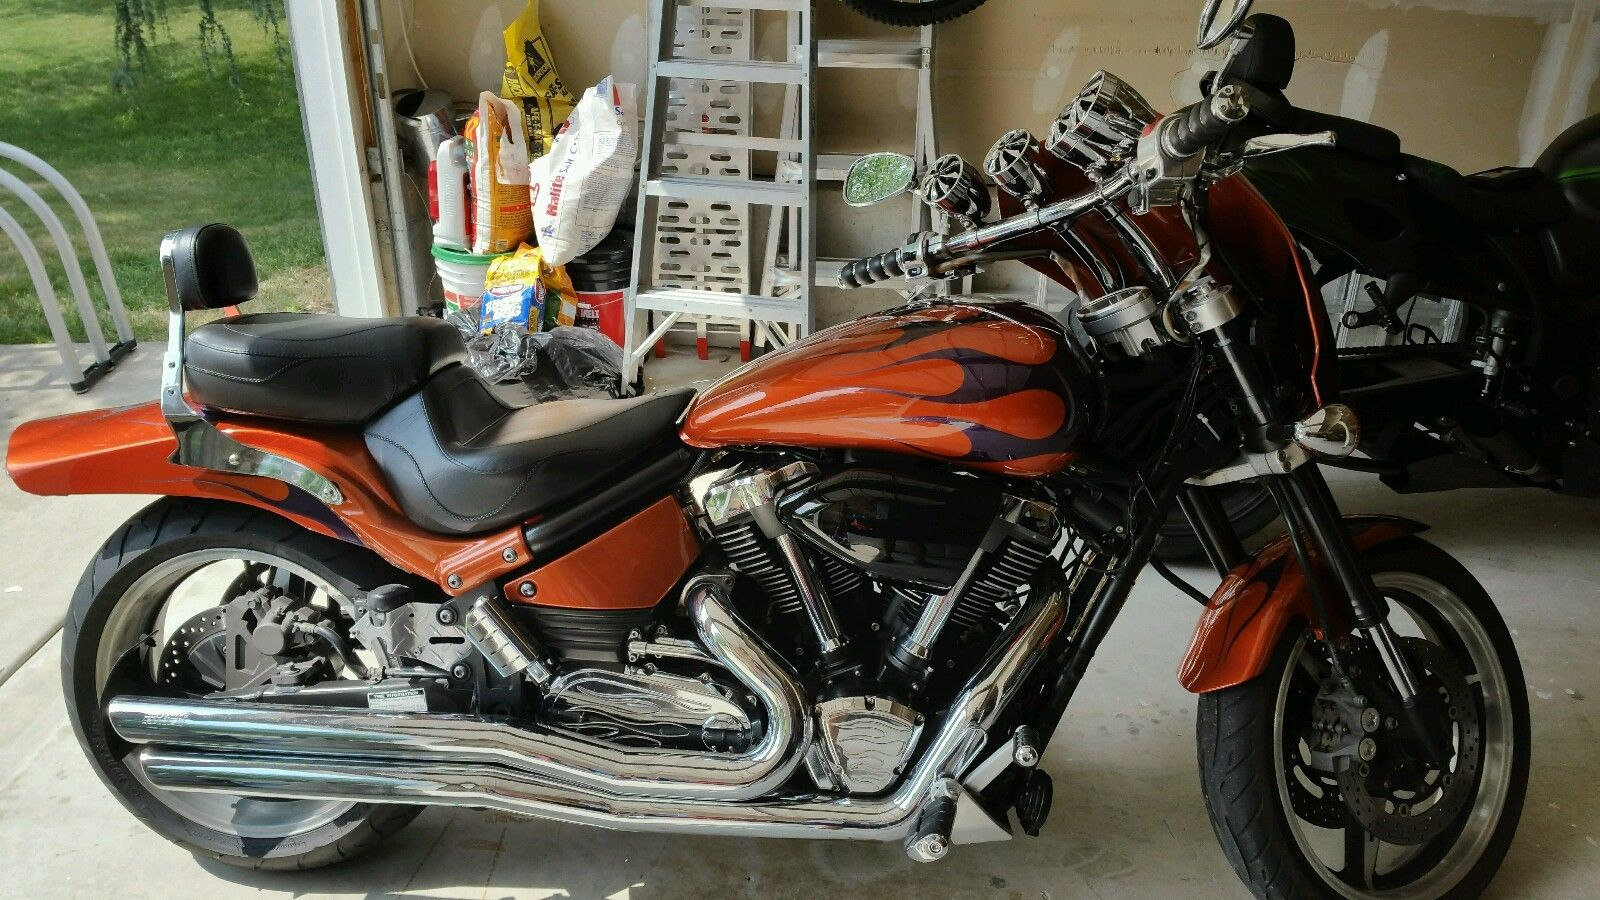 2002 yamaha road star warrior for sale for Yamaha warrior for sale